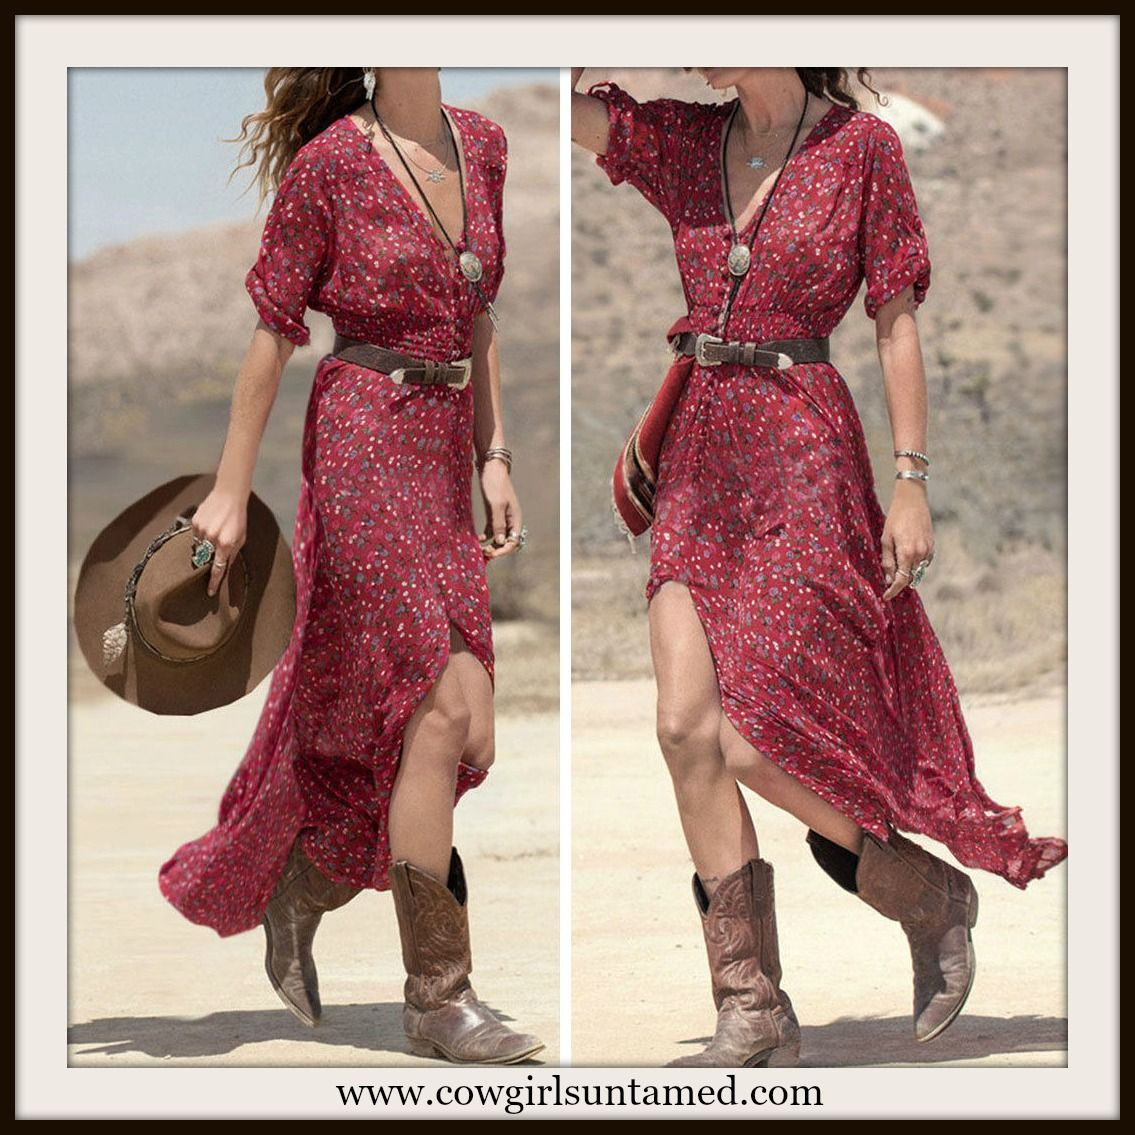 Western Cowgirl Dress Red Floral Button Front Maxi Dress Red Dress Blue Maxi Dress Long Dress Western Dress Boho Dress Cowgirl Dress Wholesale Cowgirl C Cowgirl Dresses Boho Summer Dresses Boho Maxi